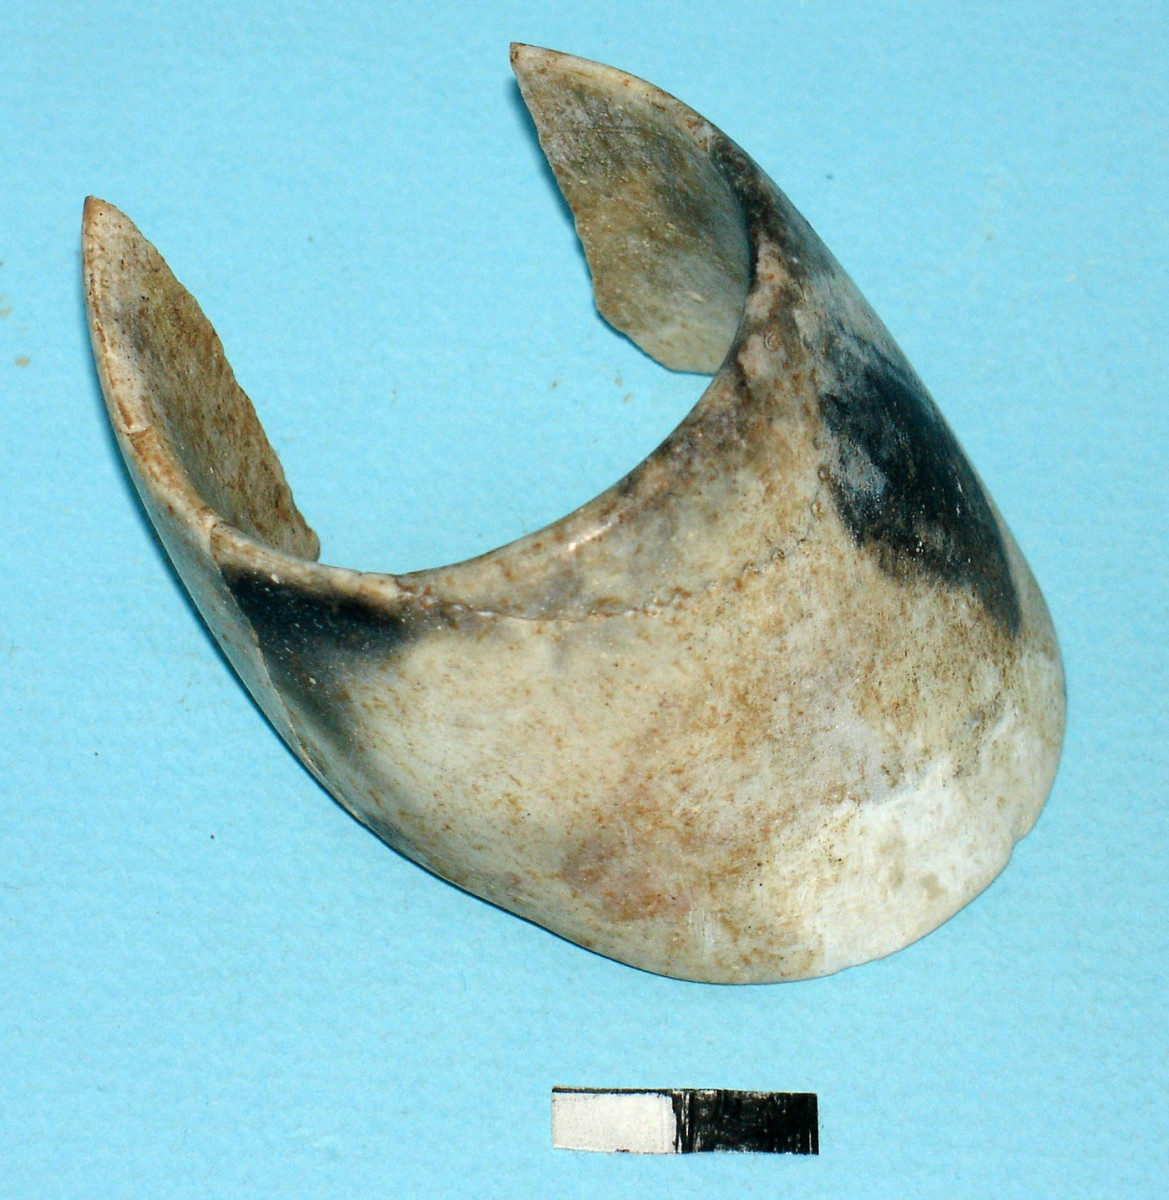 Fig. 6. Piece of stone jewellery (made of opal) from cremation burial no 22.